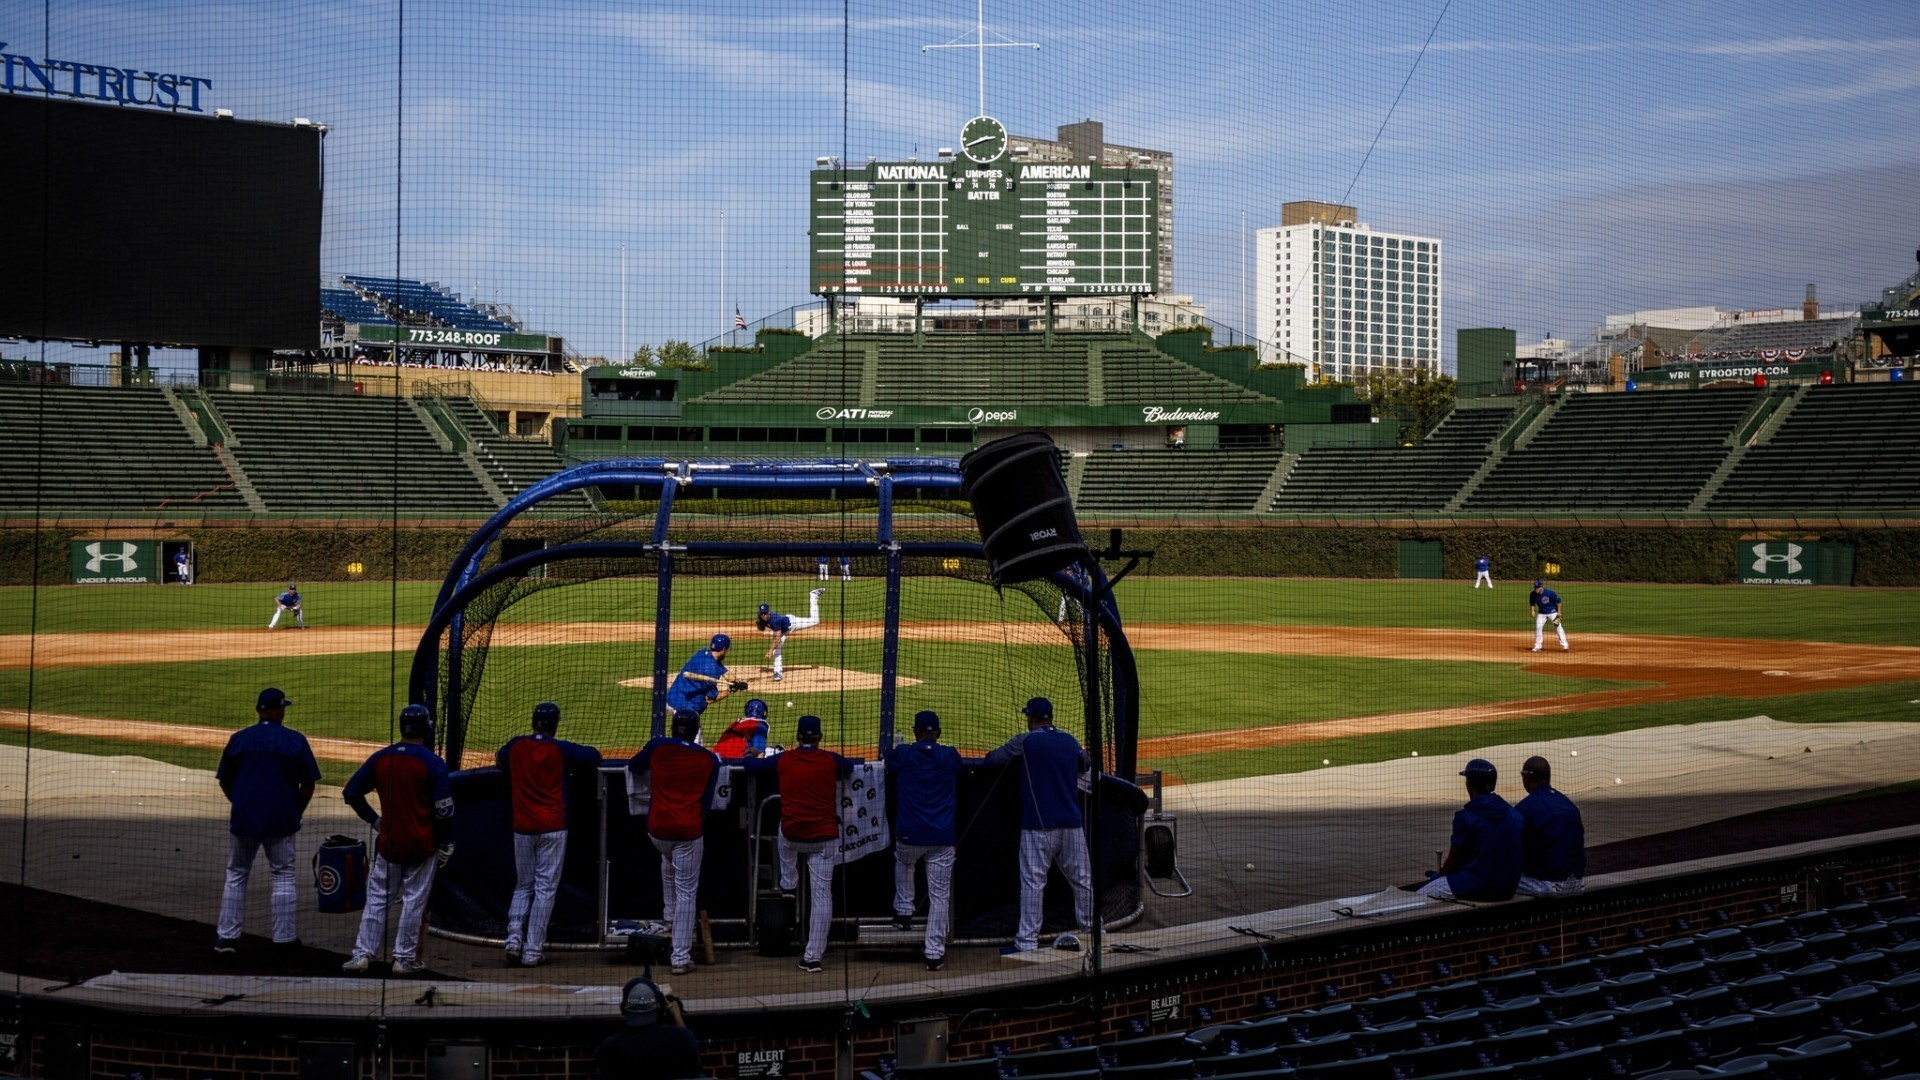 1920x1080 Cubs work out at Wrigley Field before opening postseason - Chicago Tribune